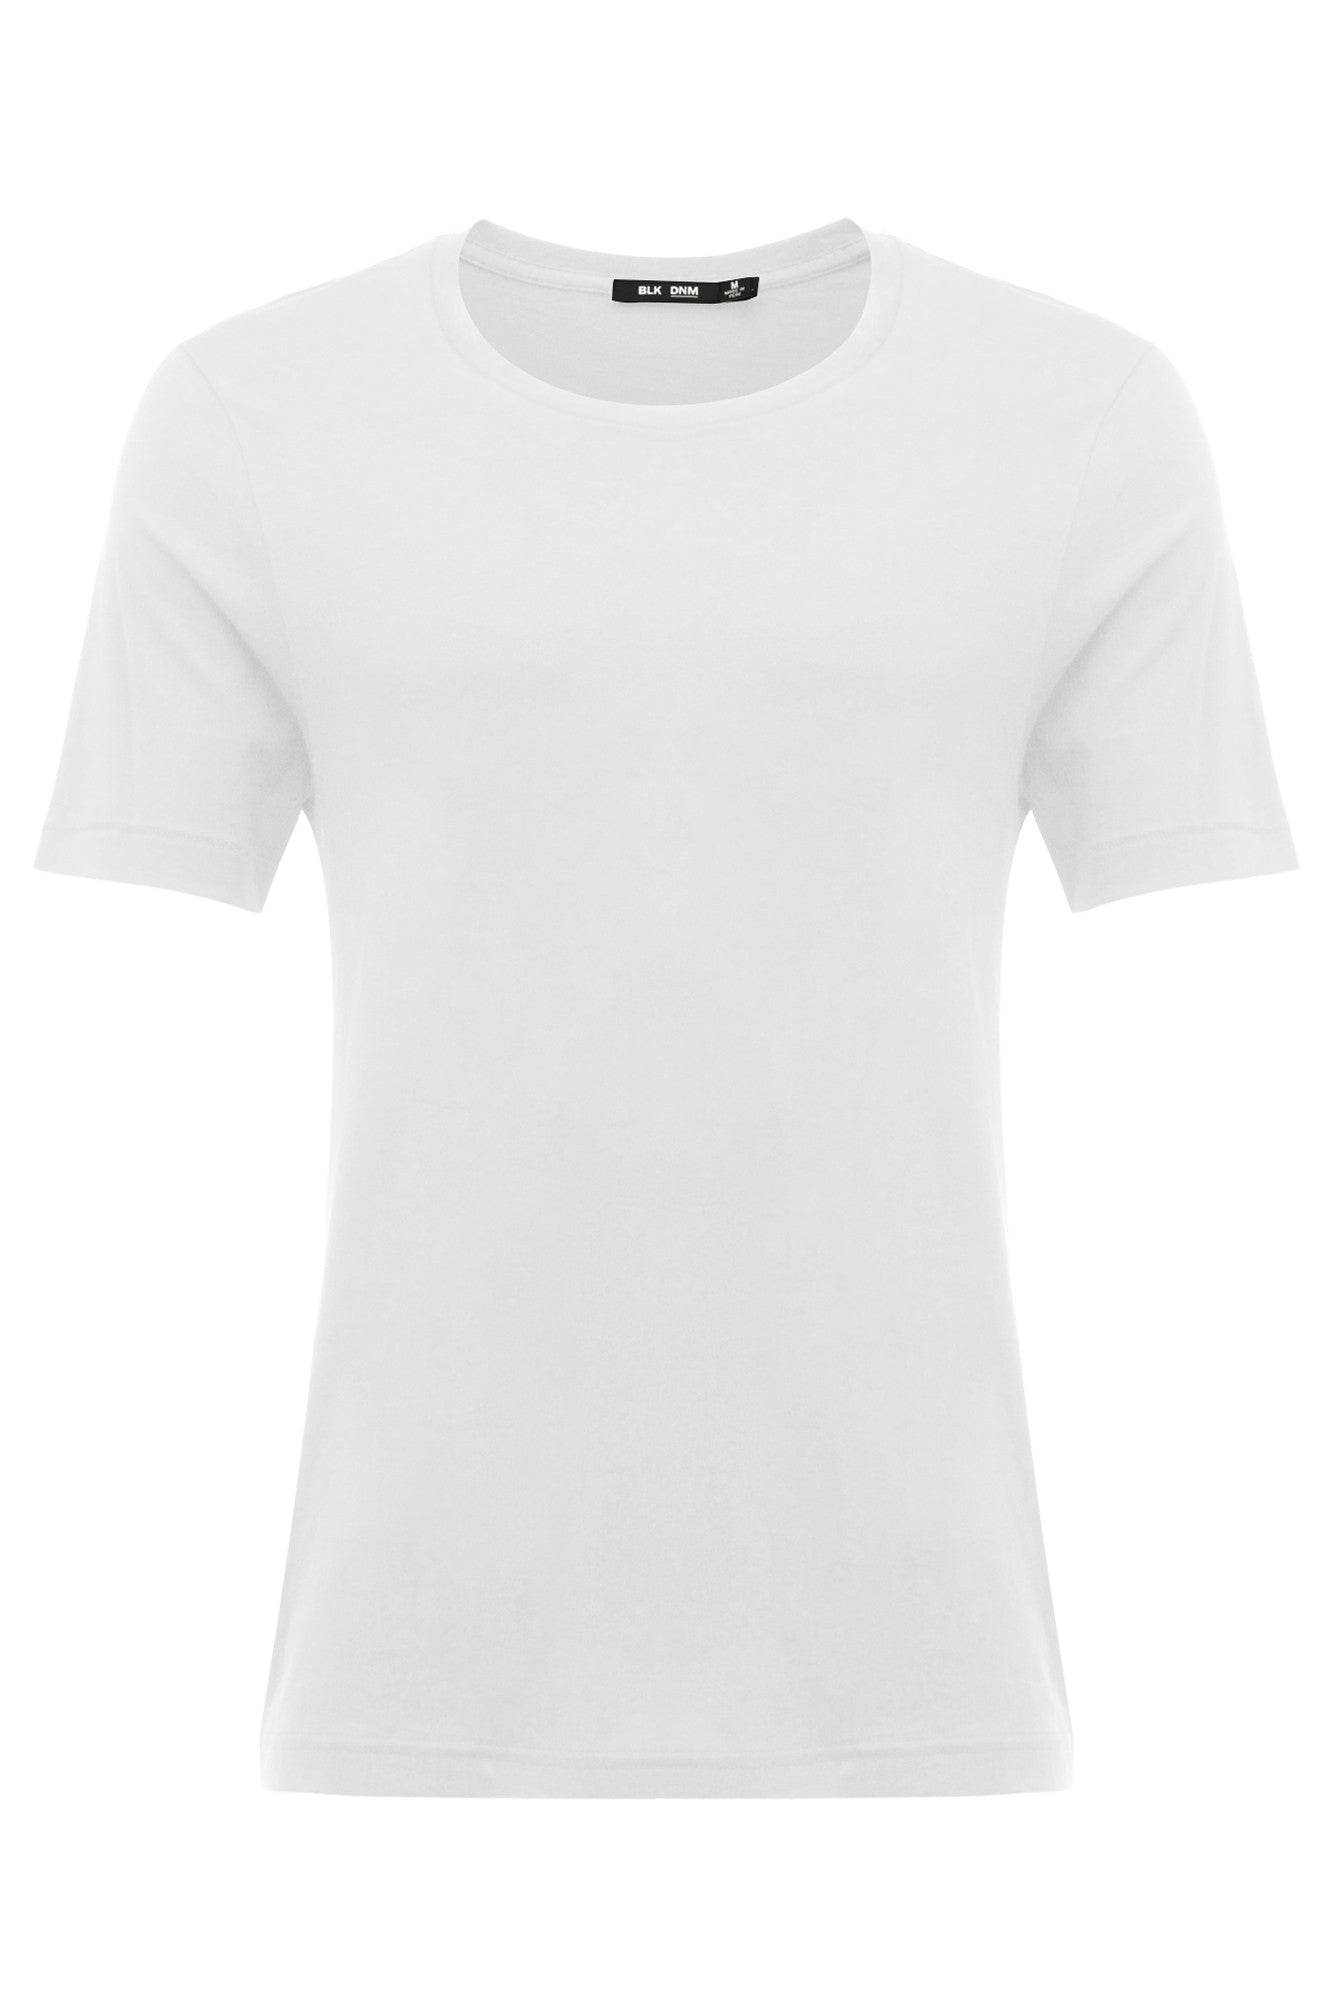 Mens T-Shirt 43 White